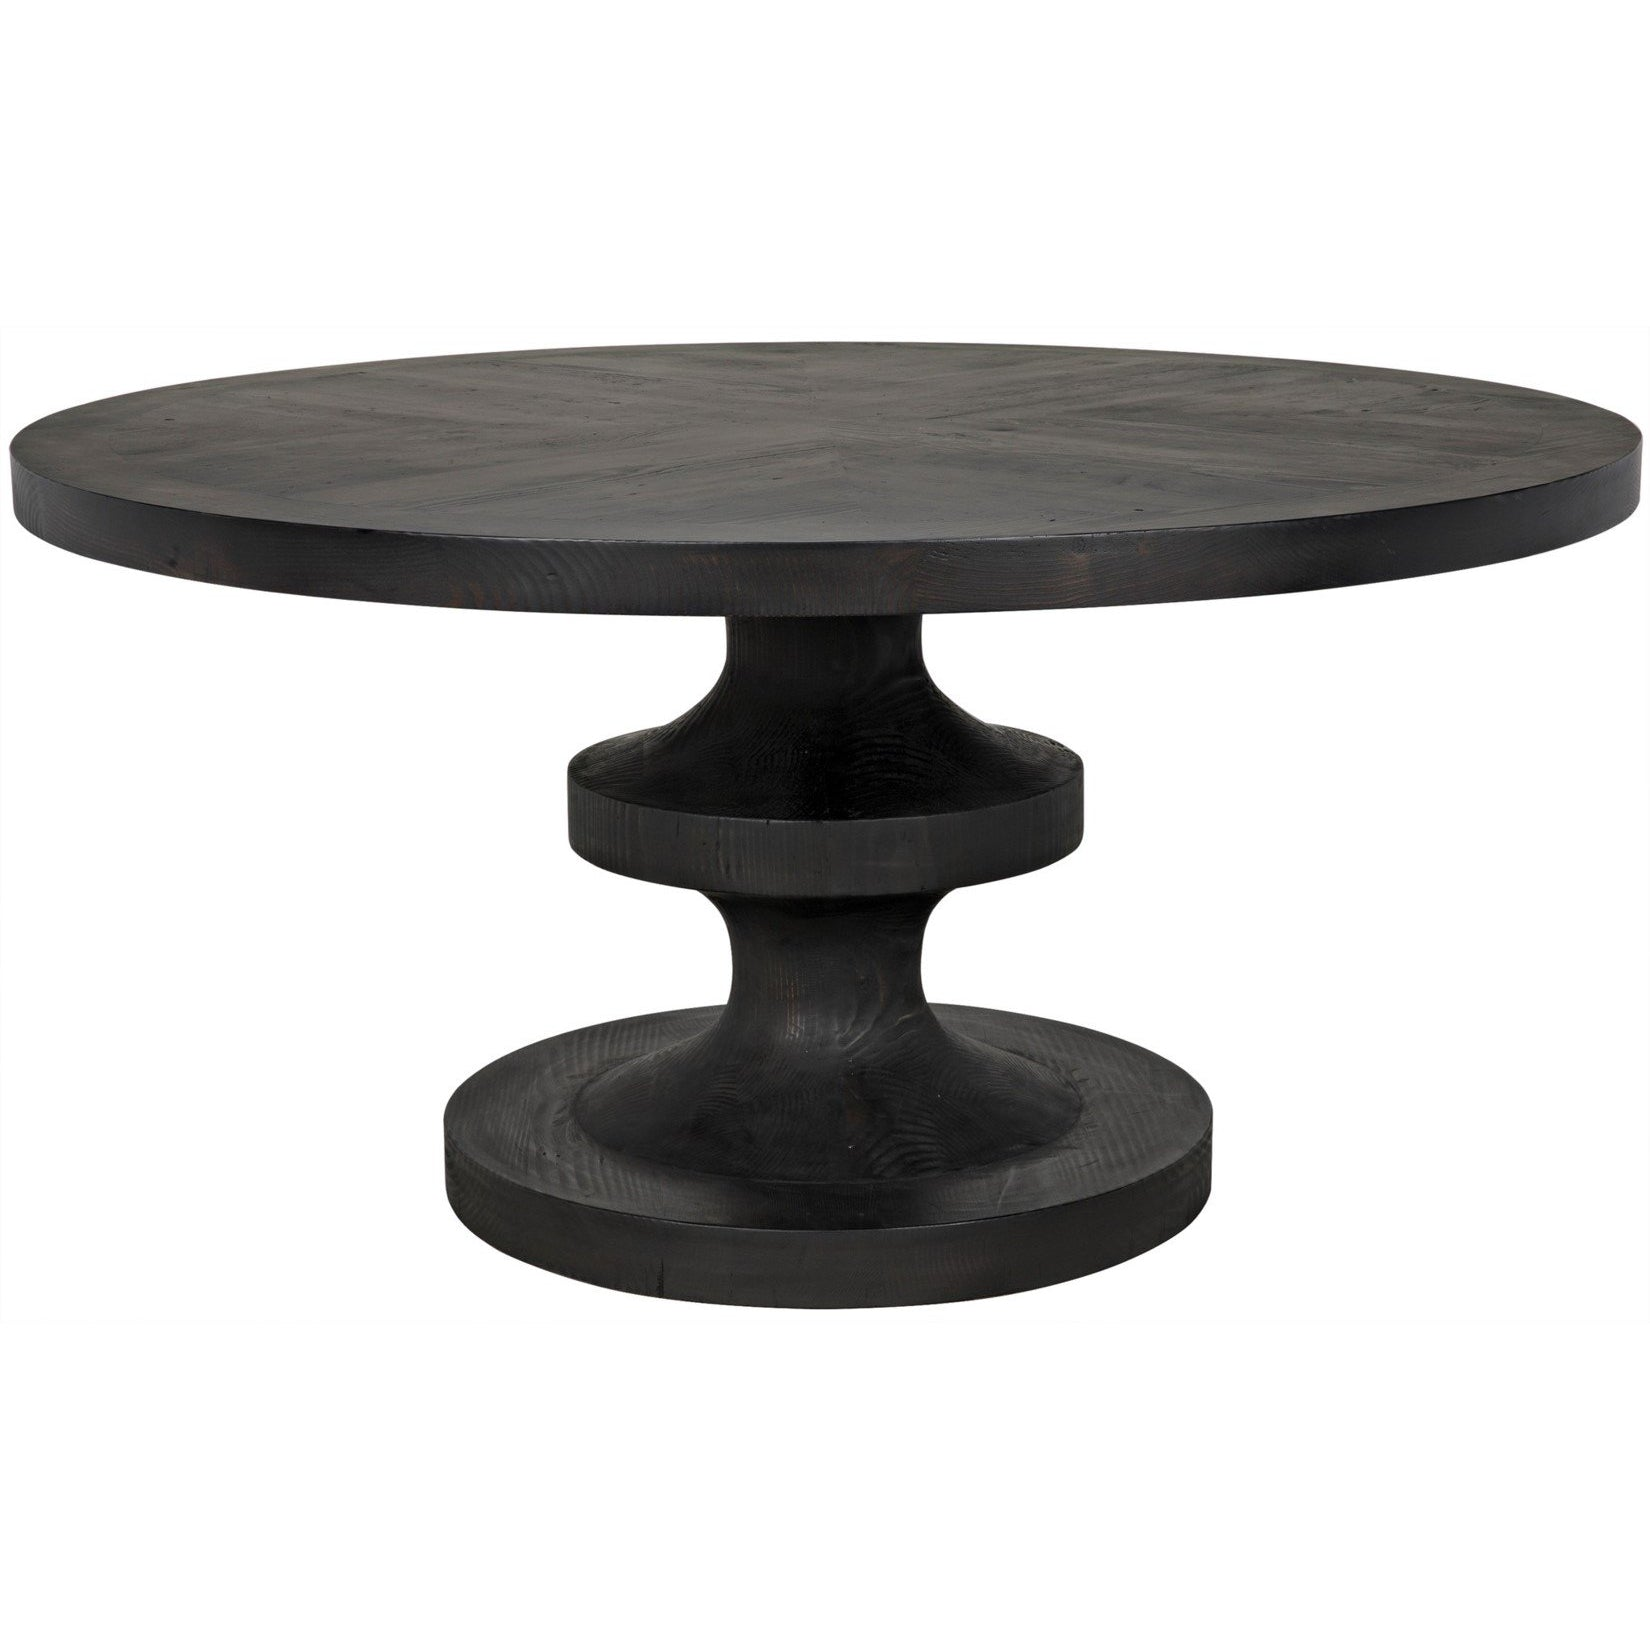 CFC Furniture Erica Dining Table